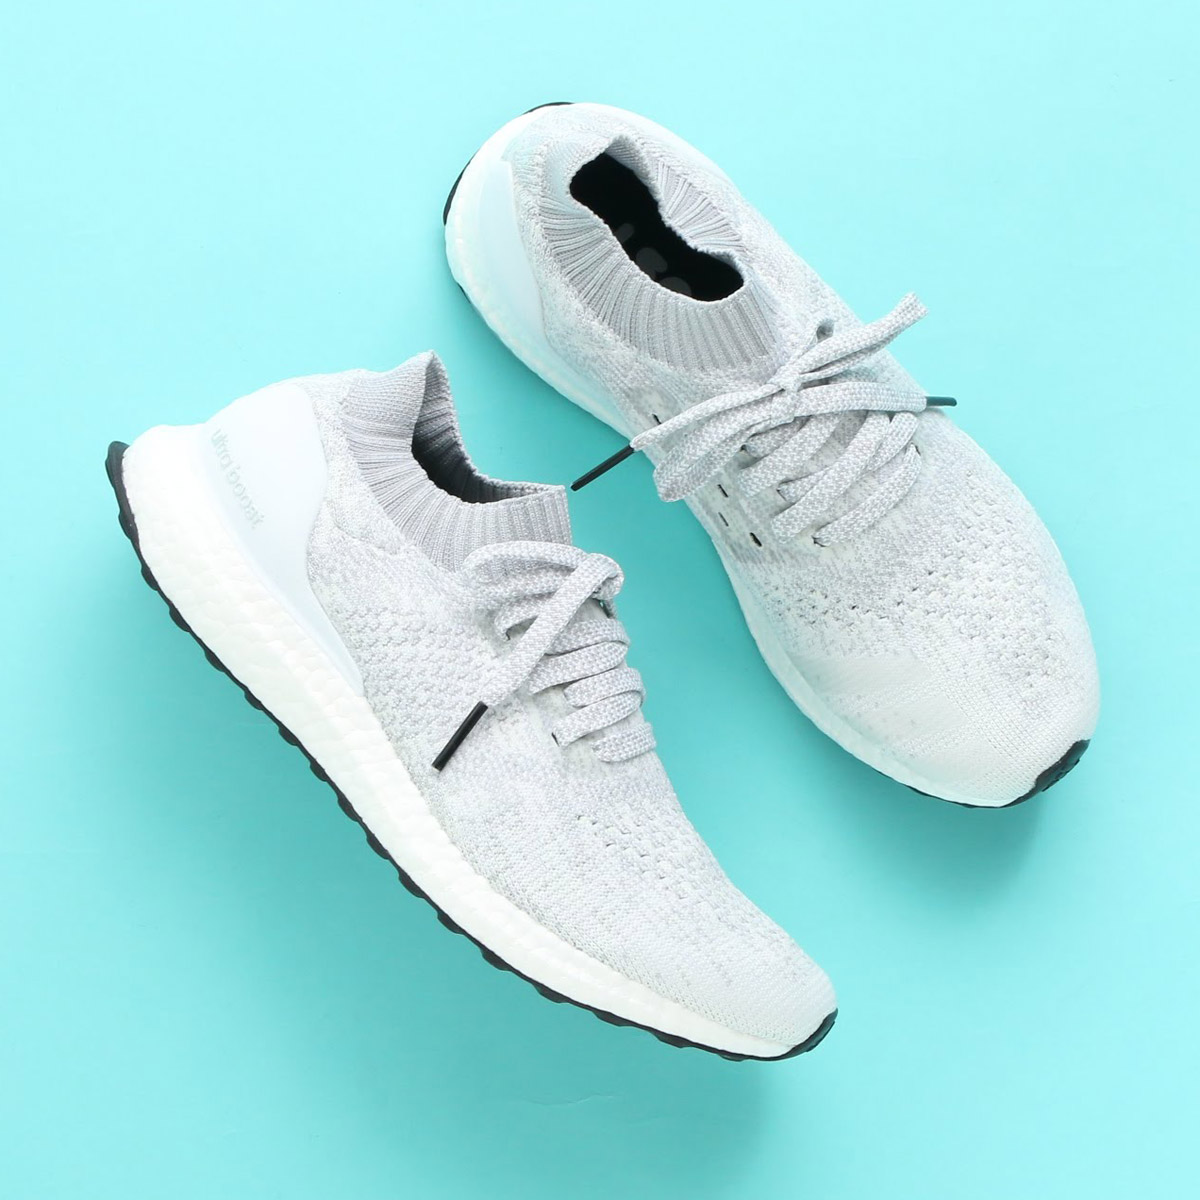 0af8ef1a0b4702 The stylish Ultra boost franchise model that and the high performance is  new. I take off a polyurethane cage such as Ultra boost to a foot part out  of the ...